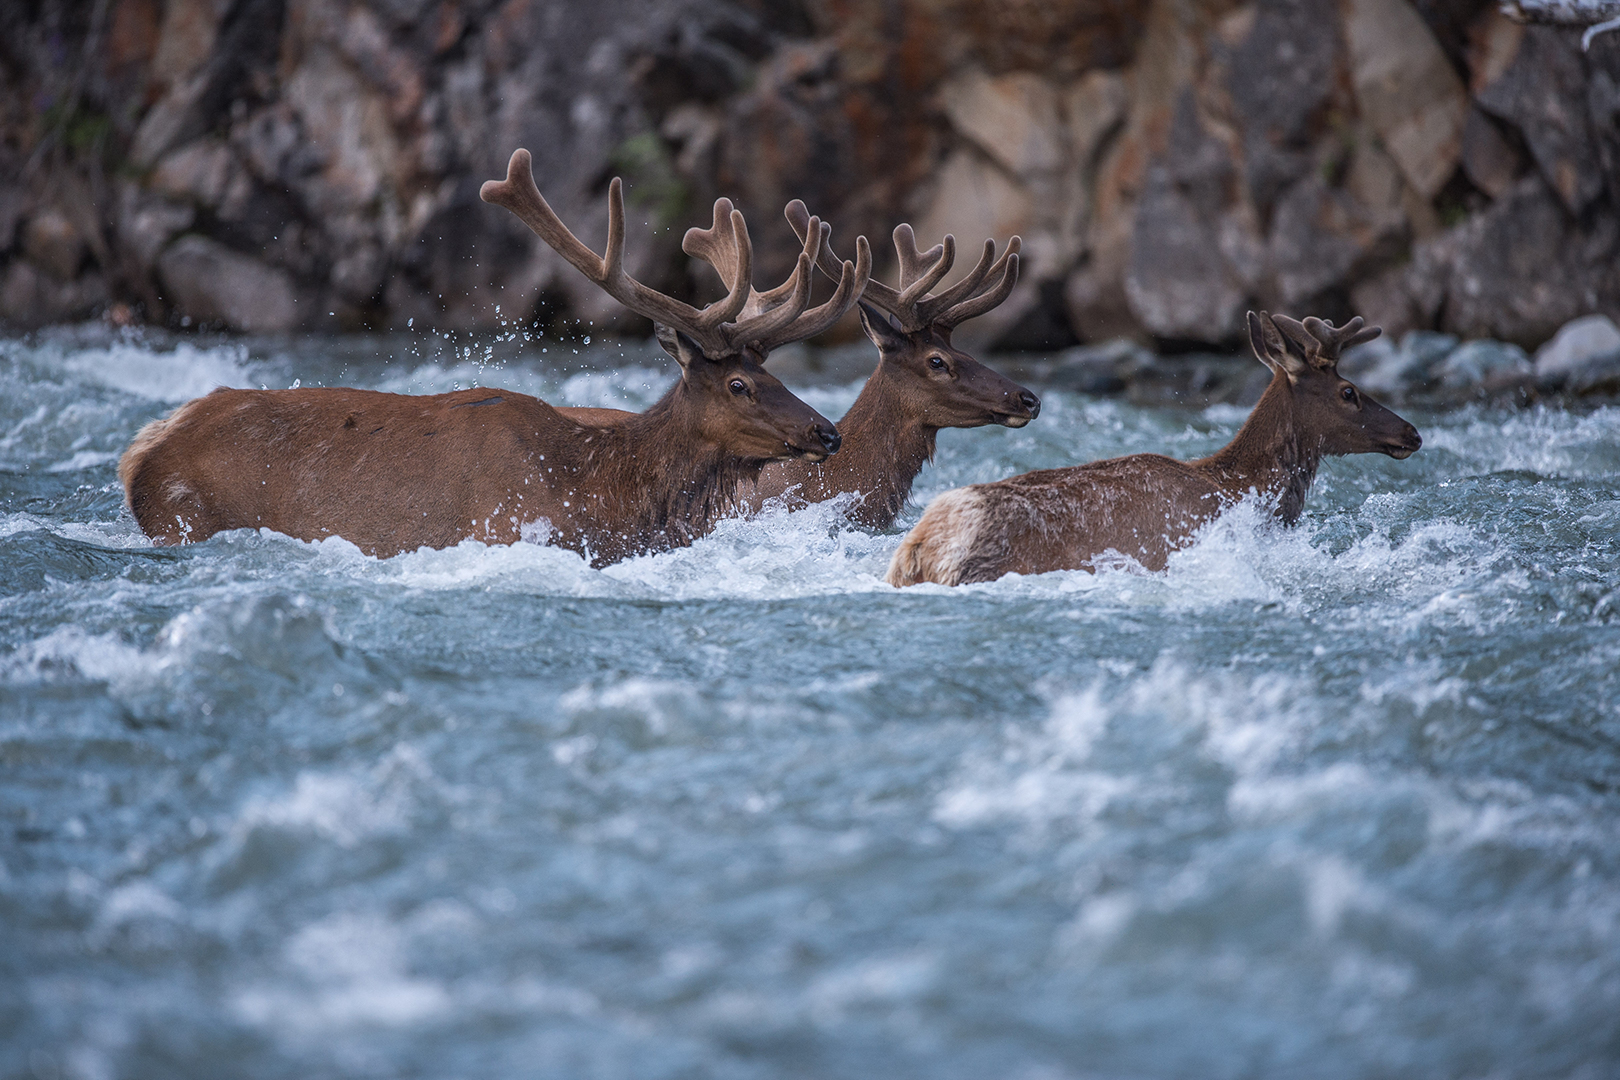 Bull elk crossing the swollen Shoshone River as they migrate towards Yellowstone National Park.